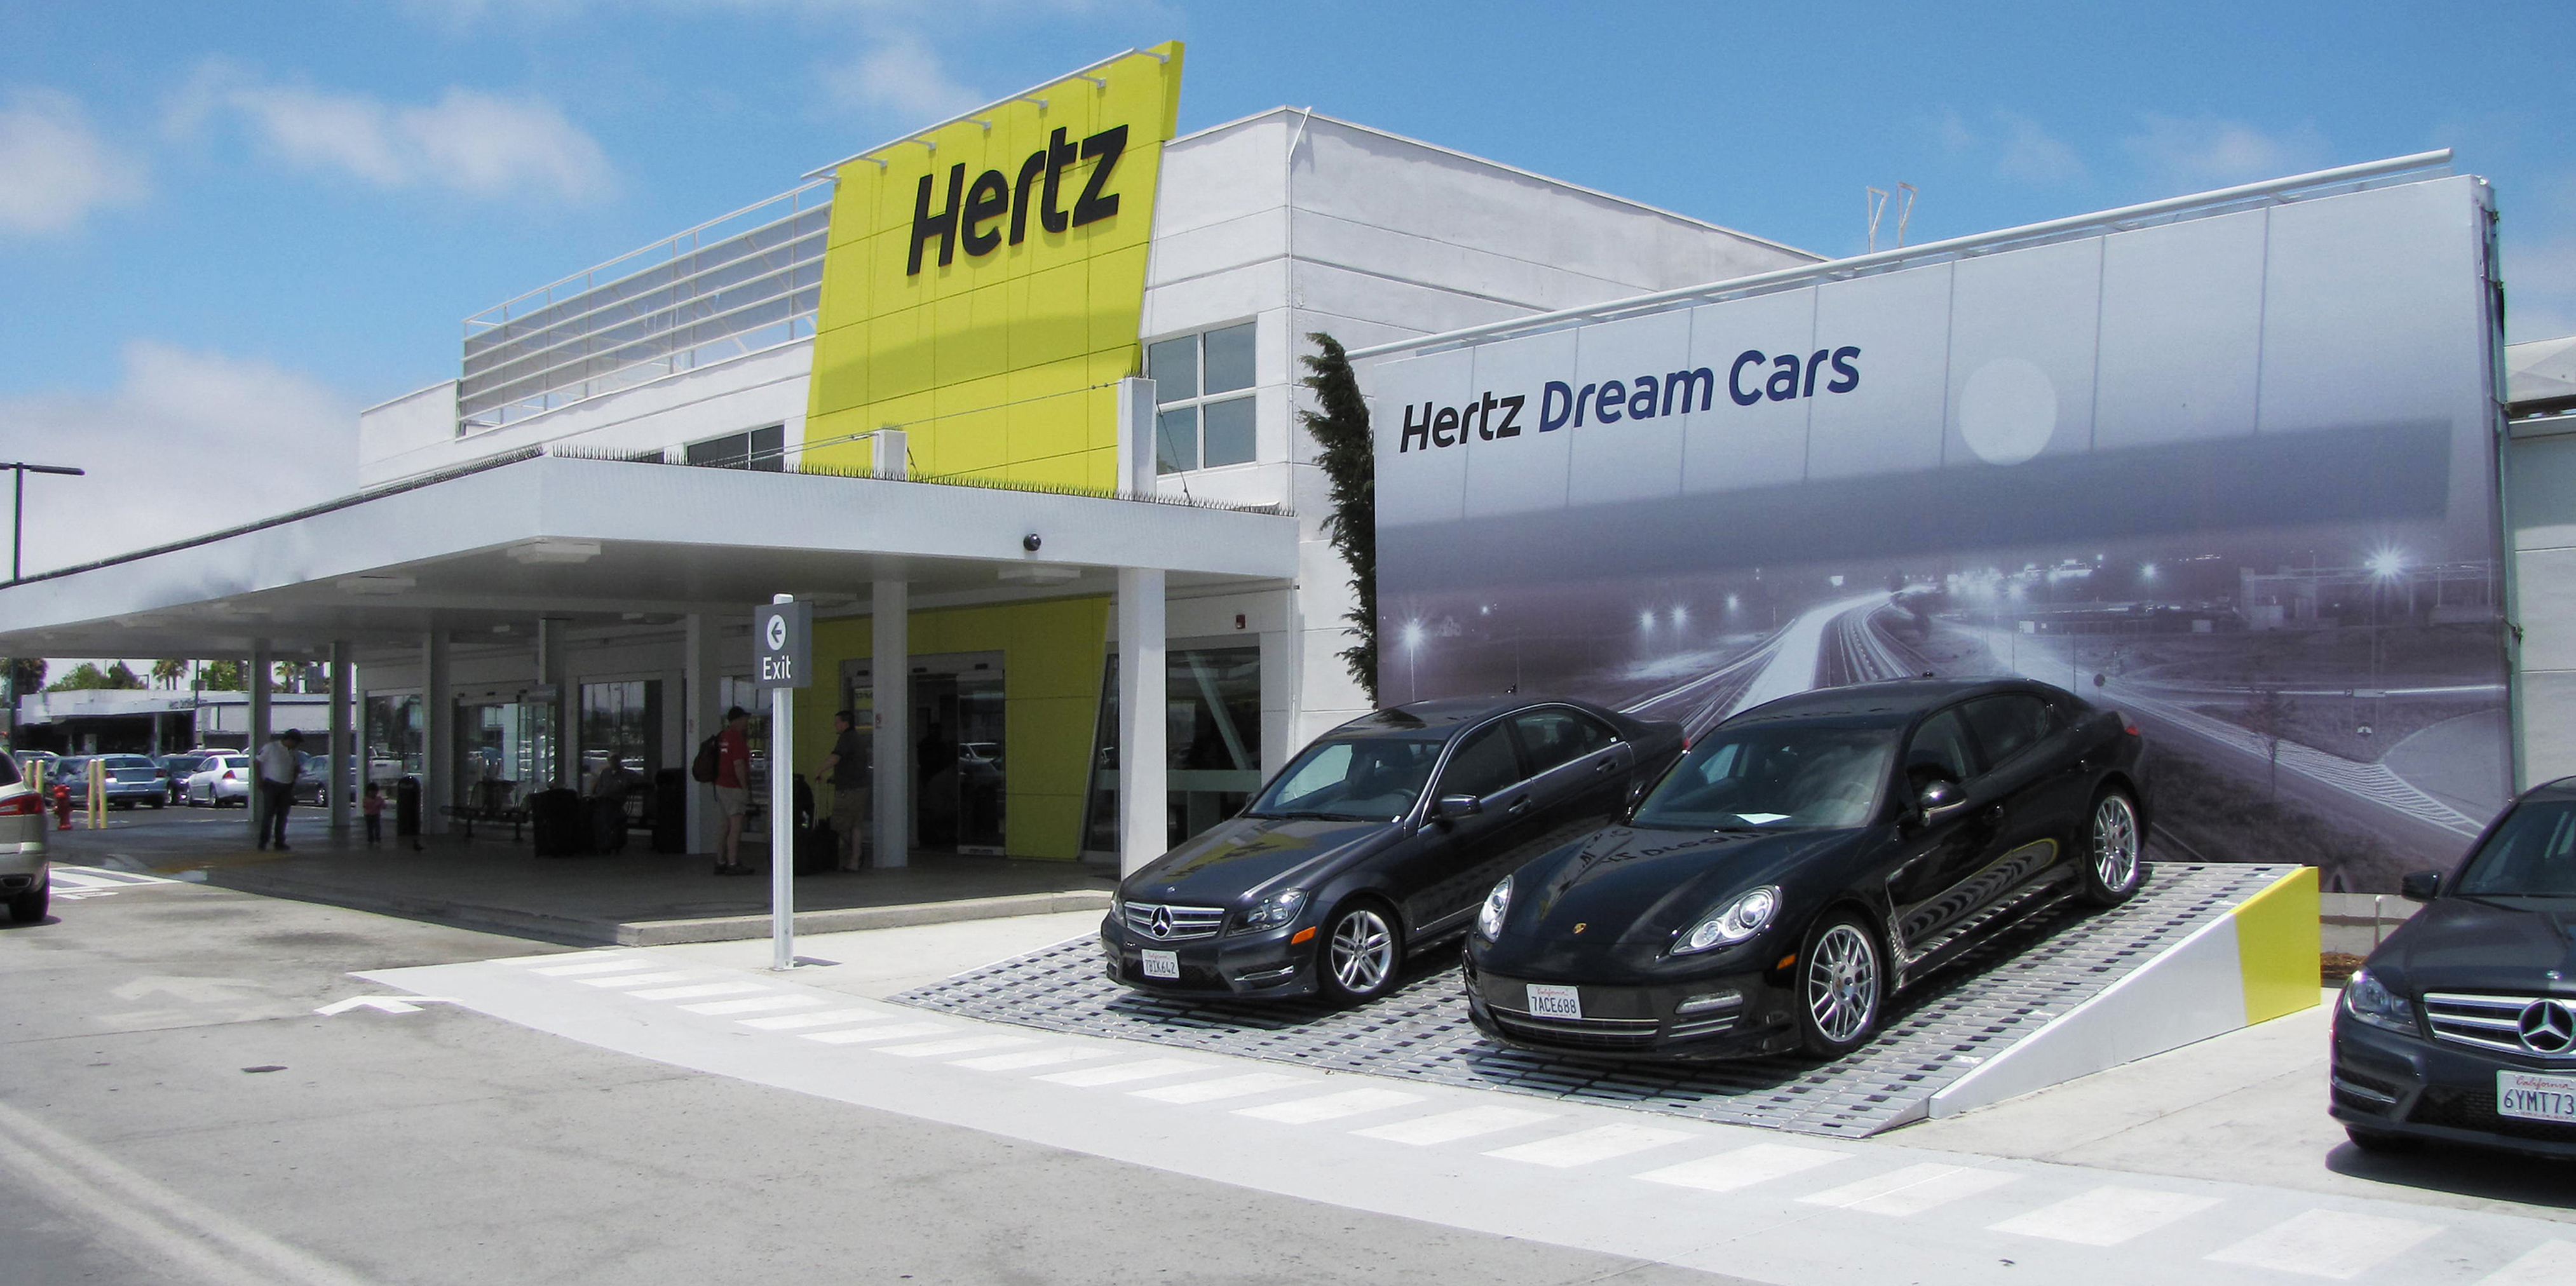 Hertz in KING OF PRUSSIA, Pennsylvania